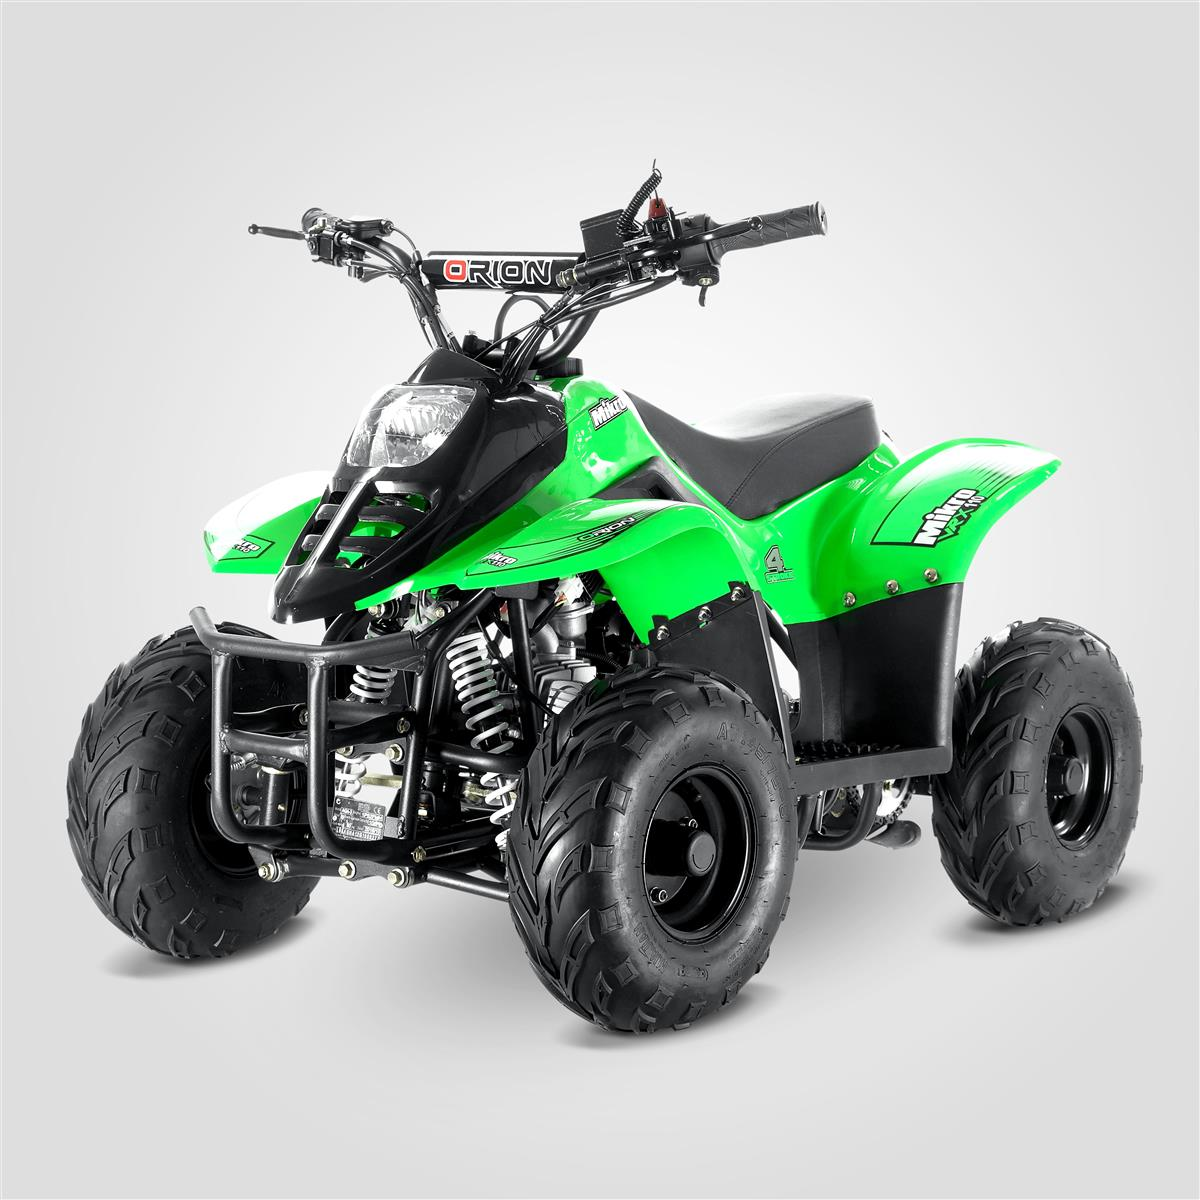 quad 110cc apollo mikro pour enfants smallmx dirt bike pit bike quads minimoto. Black Bedroom Furniture Sets. Home Design Ideas